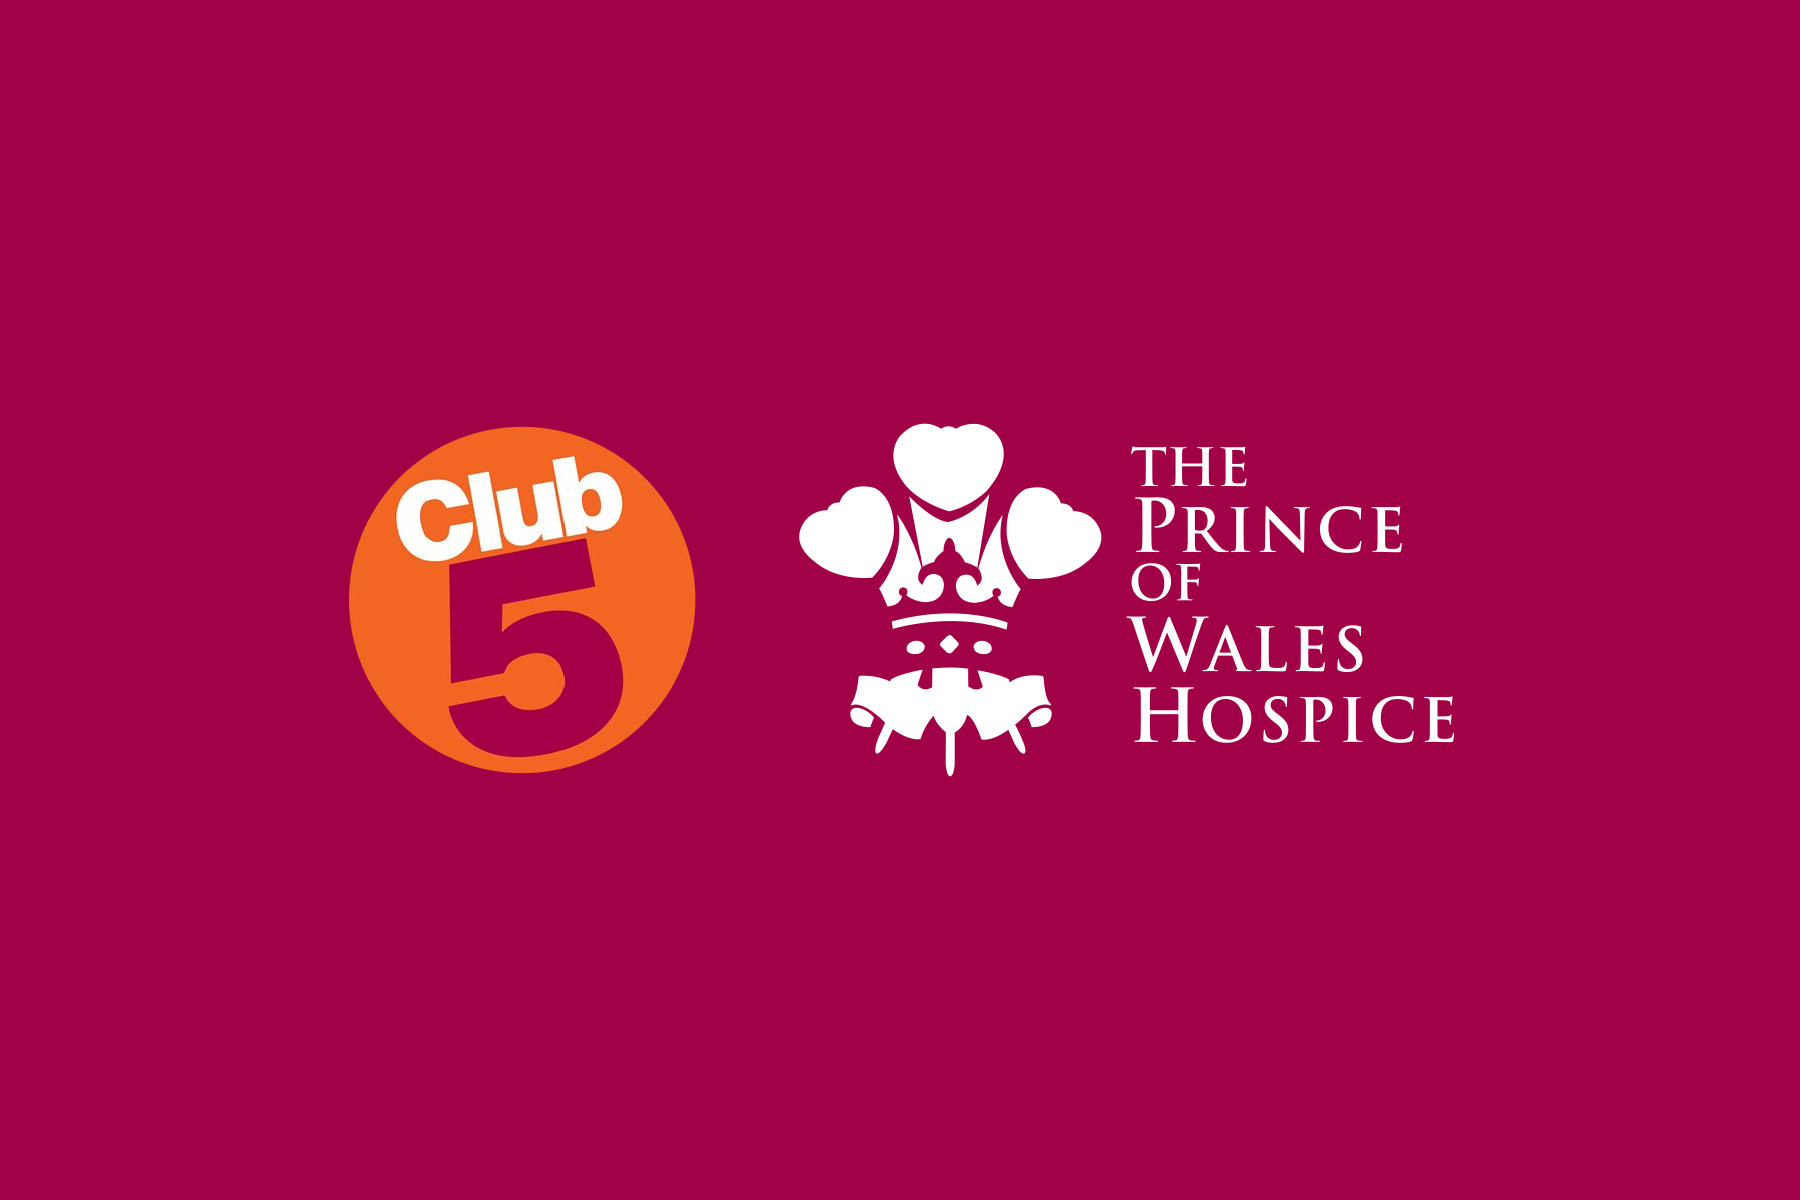 Prince of Wales Hospice Club 5